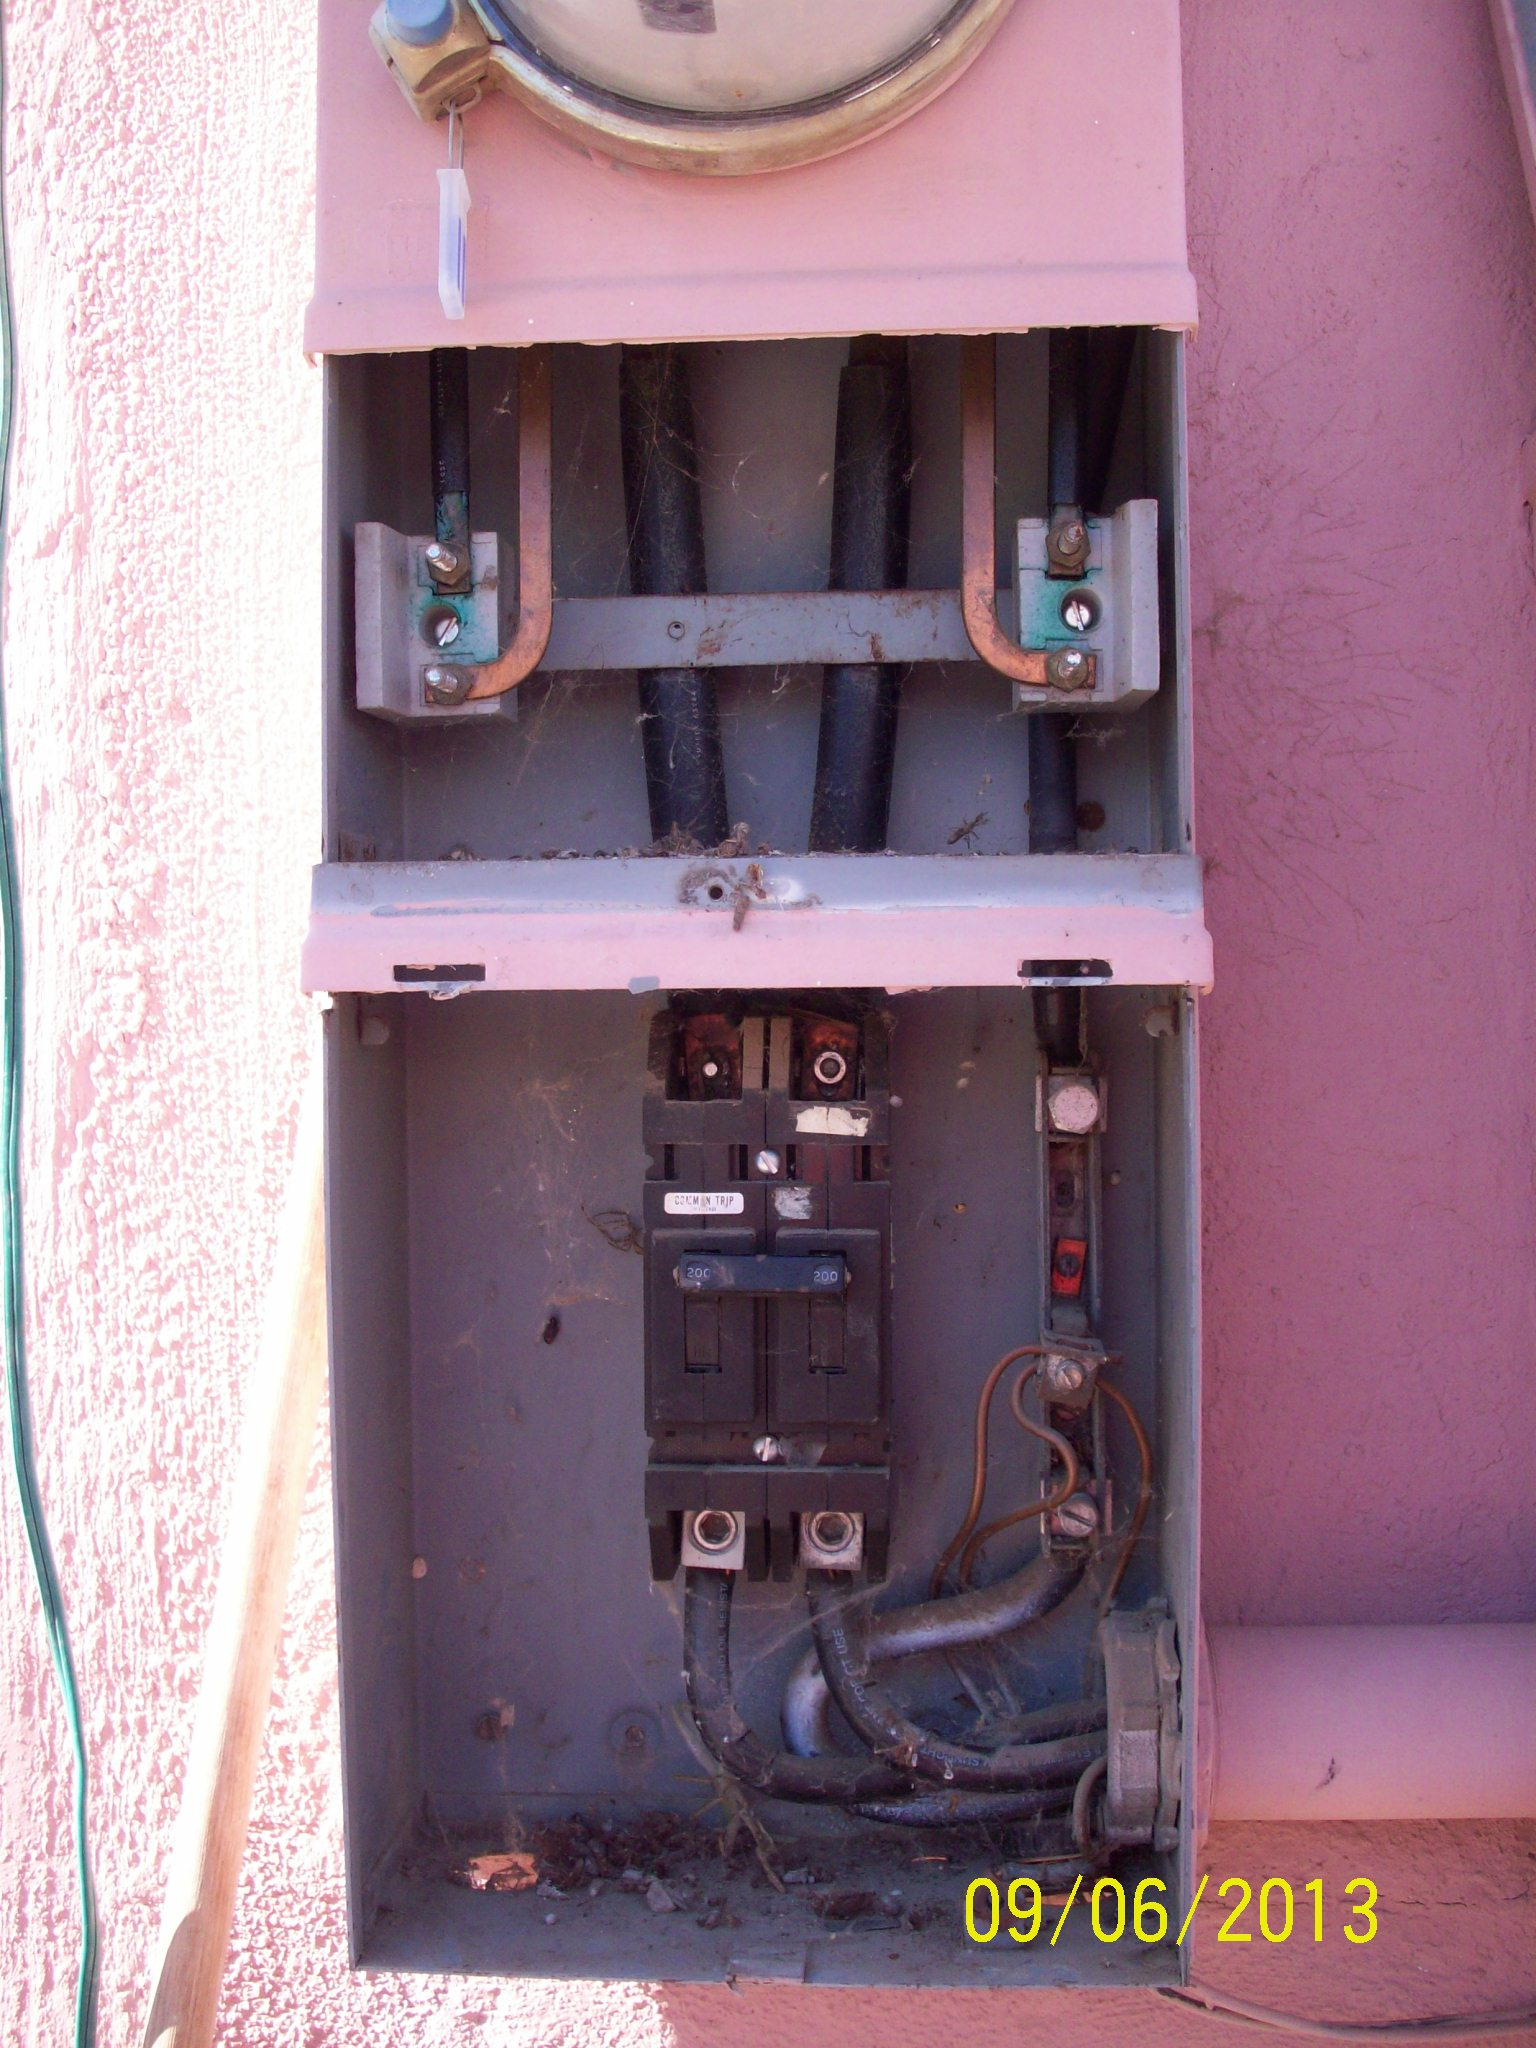 400 amp Circuit main breaker